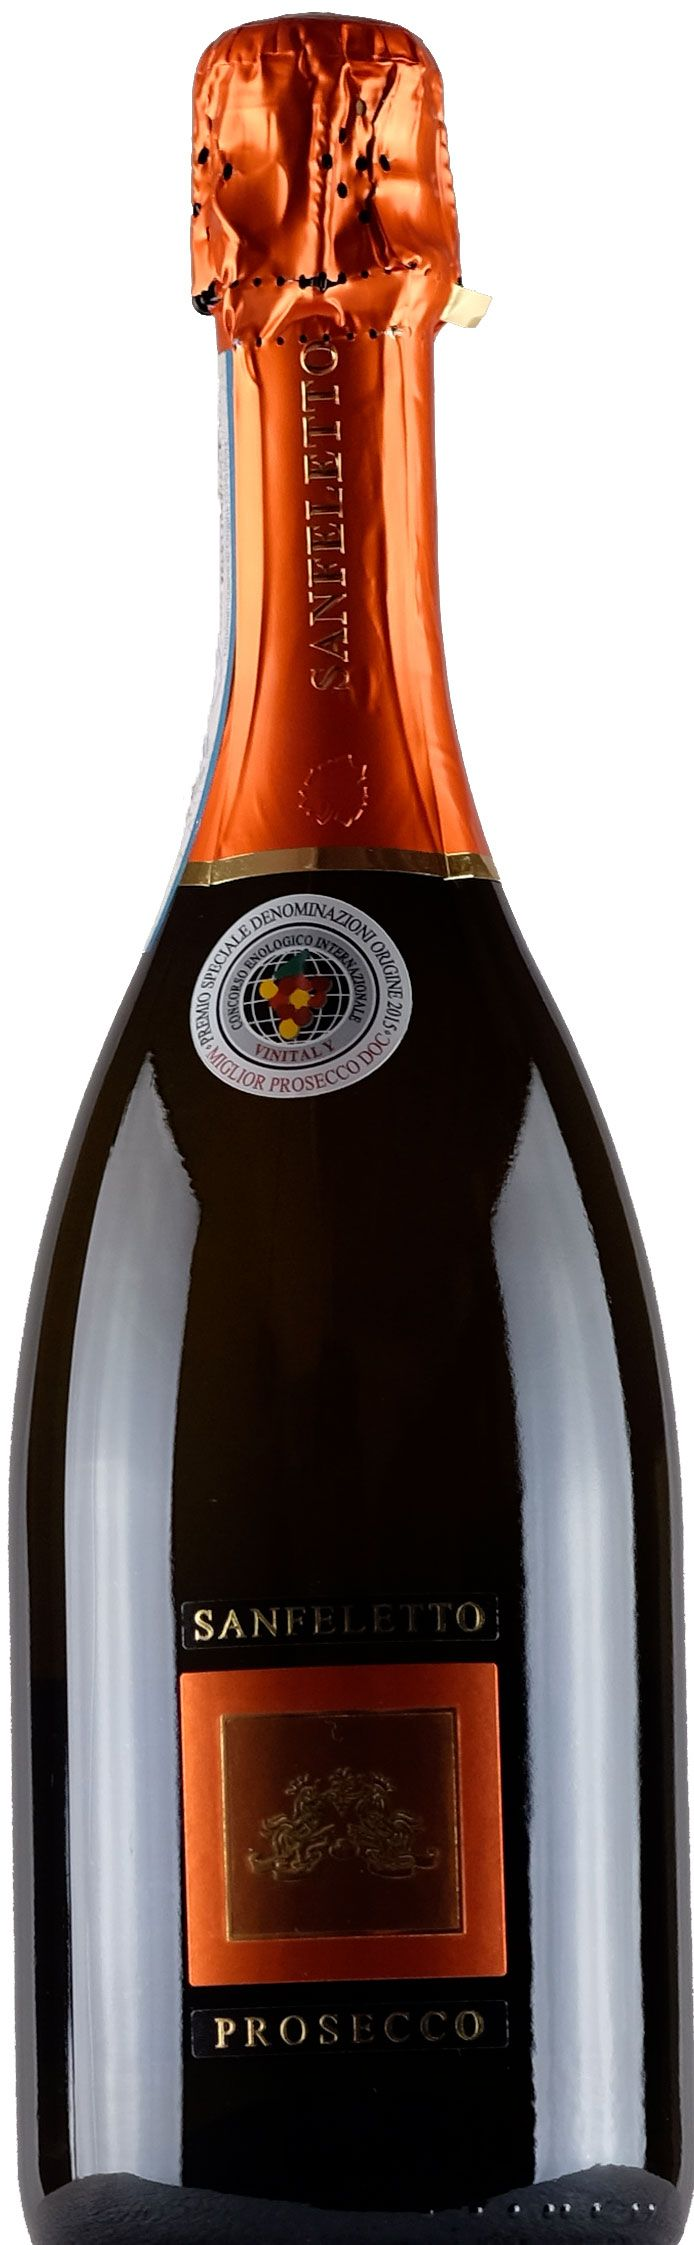 Price 10.98💸 for Sanfeletto Prosecco Treviso Brut.:  Obtained from Prosecco DOC hills. Featuring a fine and sharp bouquet, a strong and dry flavor with a pleasant crust of bread crust. A versatile product that lends itself as an aperitif or whole meal with fish starters and risotto.  #Xtrawine #com #Food #and #beverages